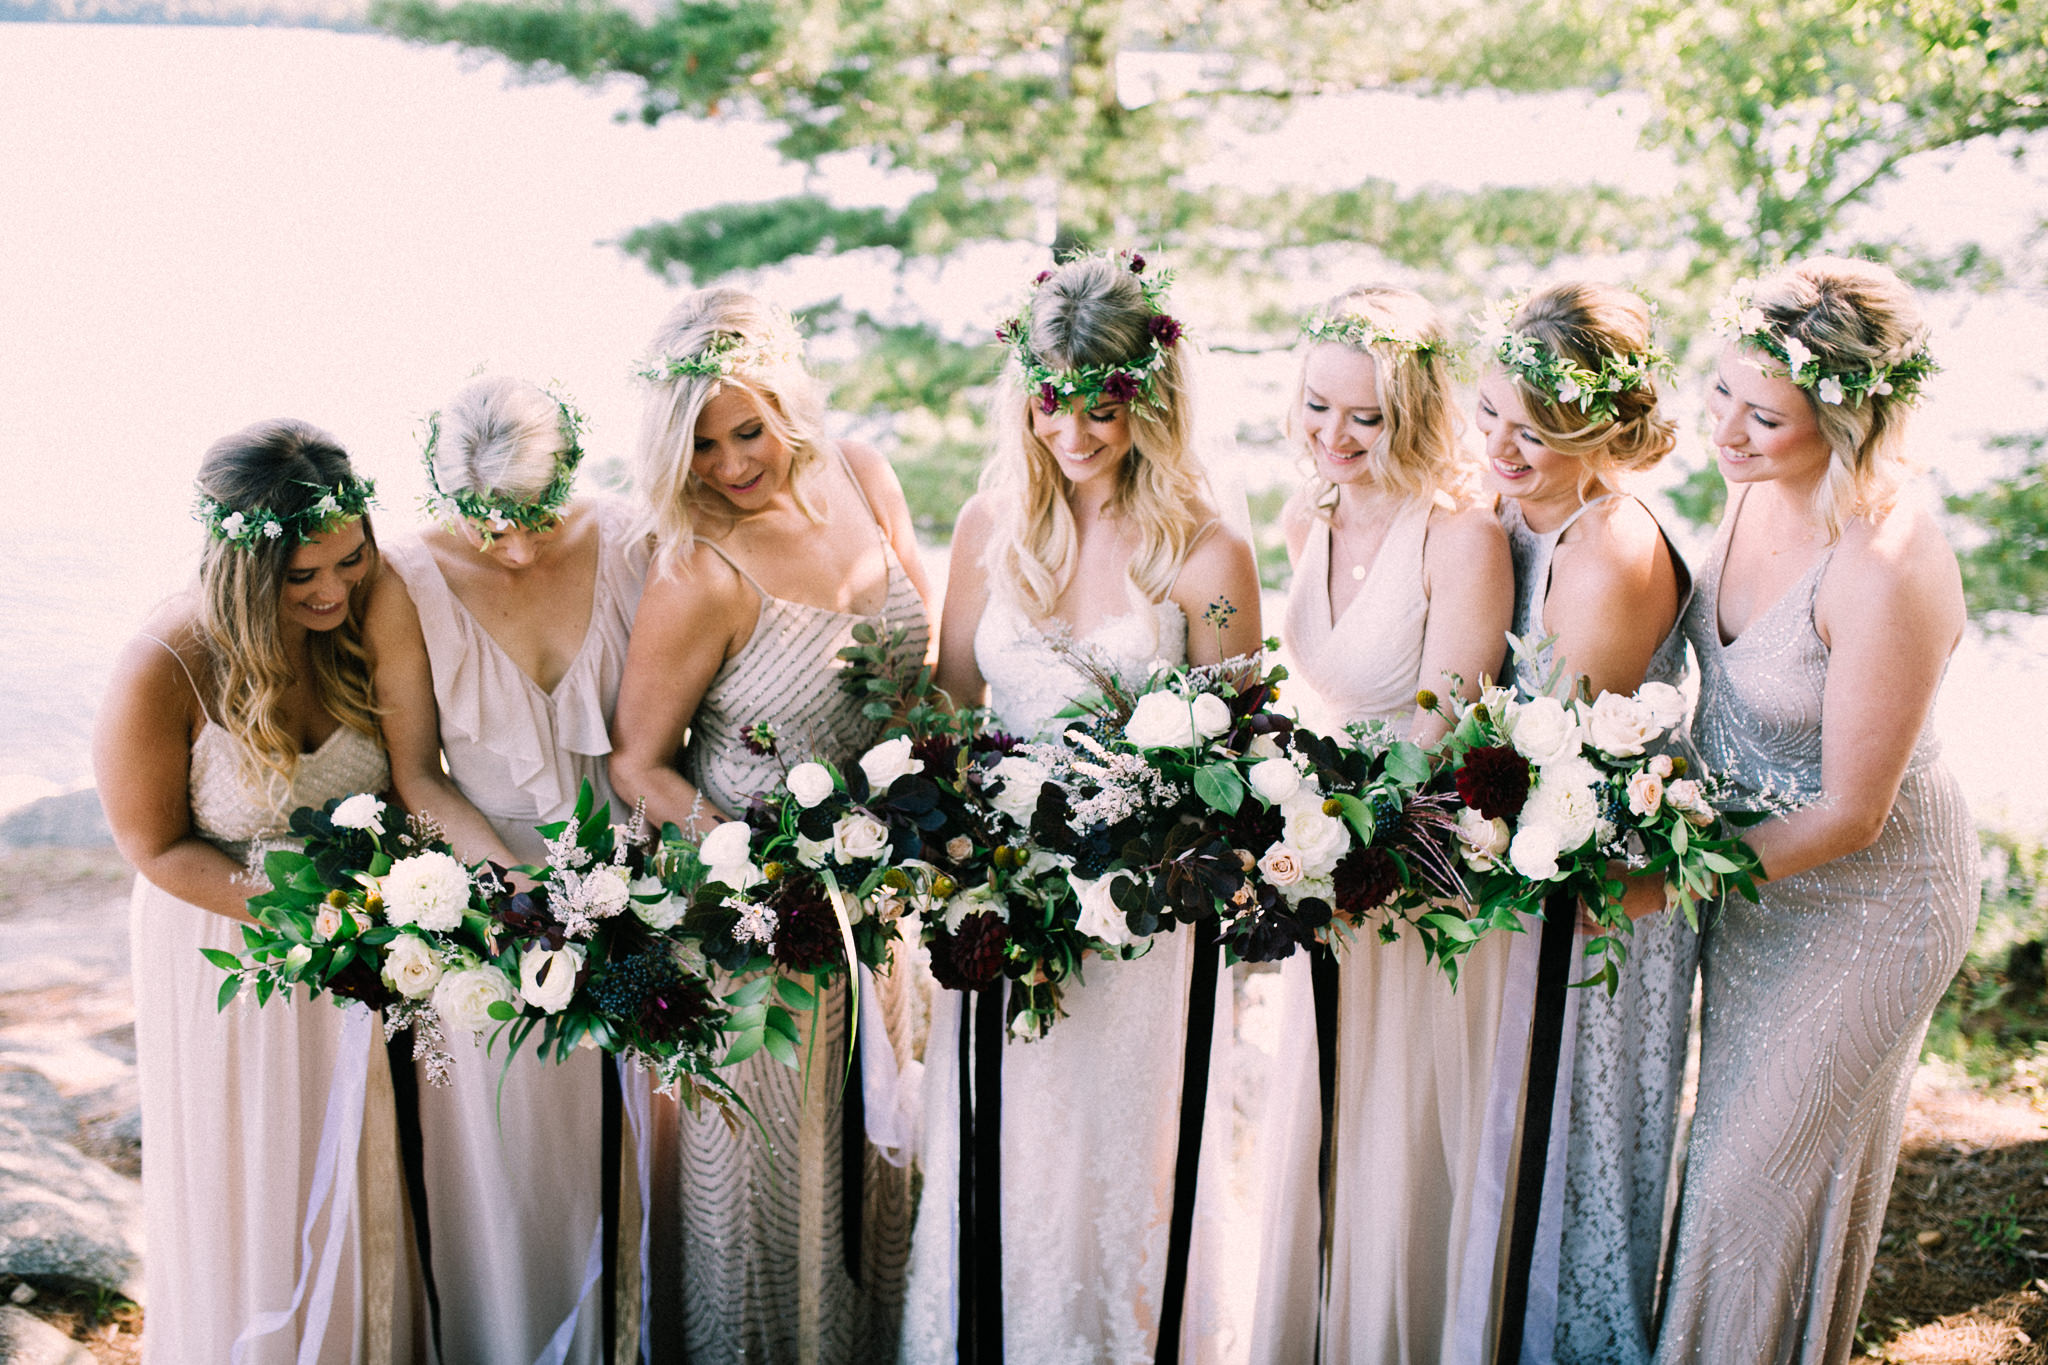 Muskoka lakeside wedding at Port Cunnington Lodge by Max Wong Photo (33)